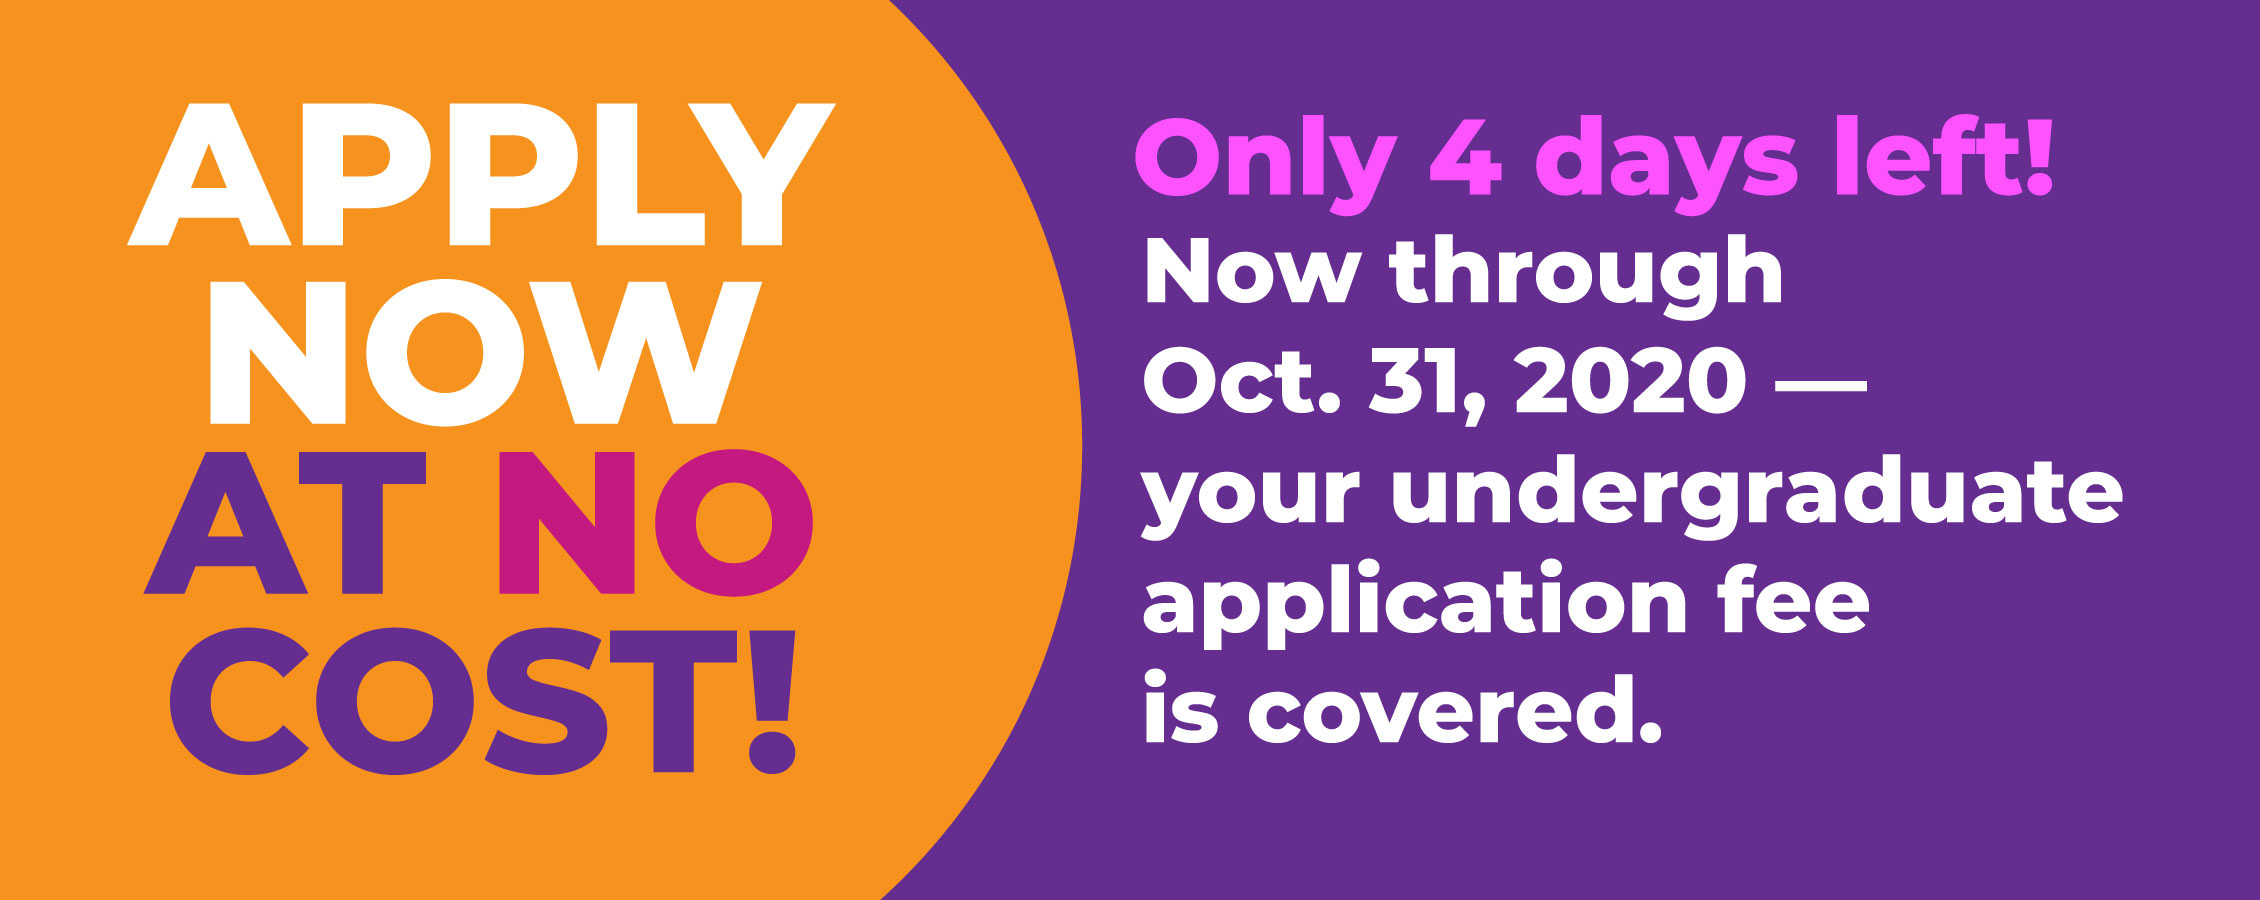 Purple and orange graphic, says apply now at no cost!